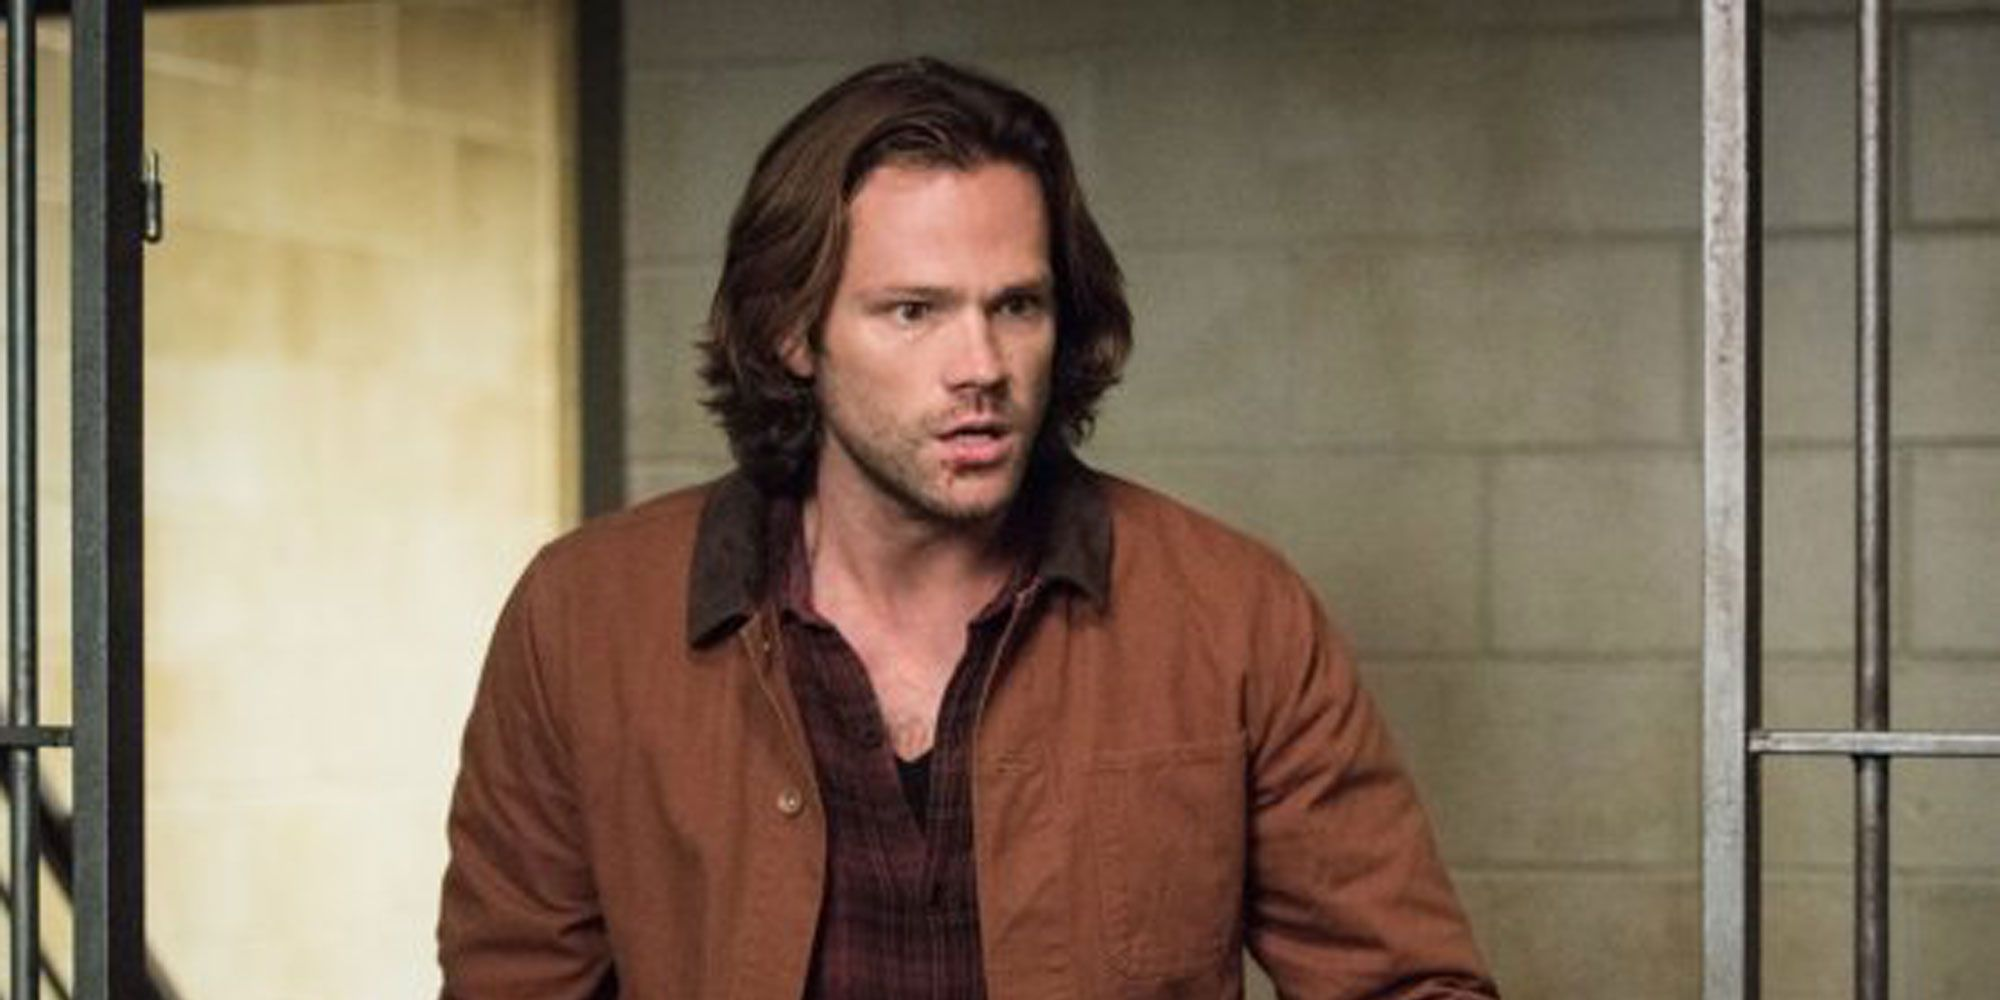 Jared Padalecki, Supernatural, Episode 13, Lost and Found